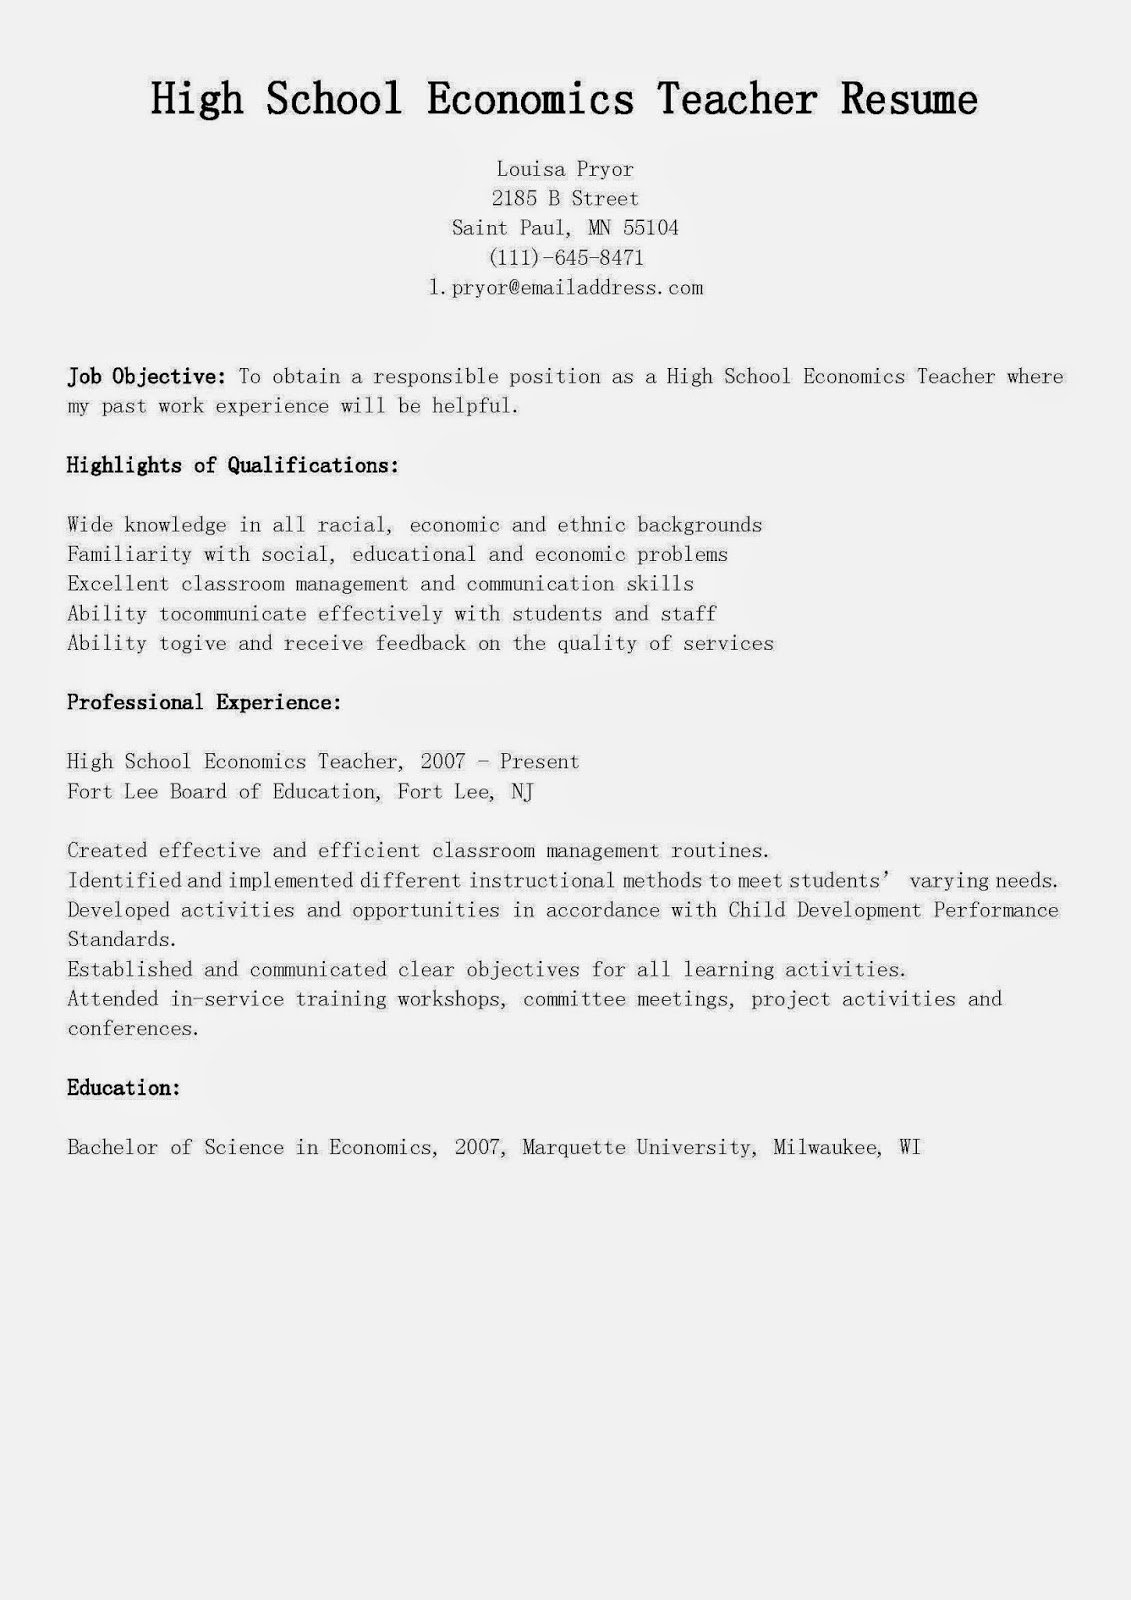 High School Teacher Resume Fresh Resume Samples High School Economics Teacher Resume Sample